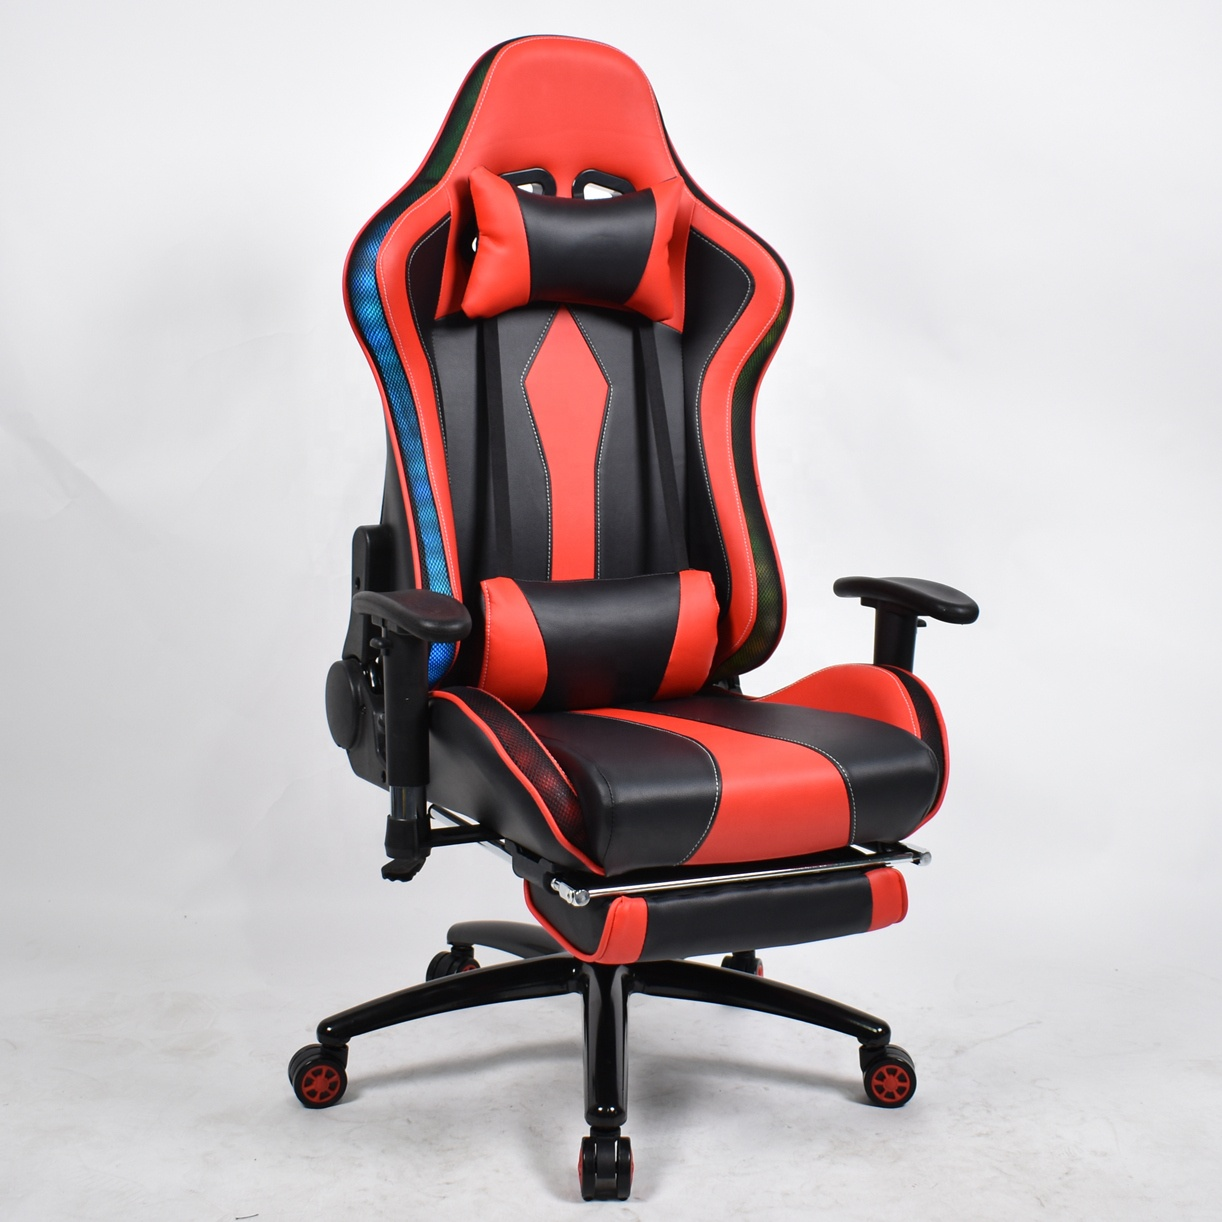 RGB LED Lighting Silla Gaming Chair For Game